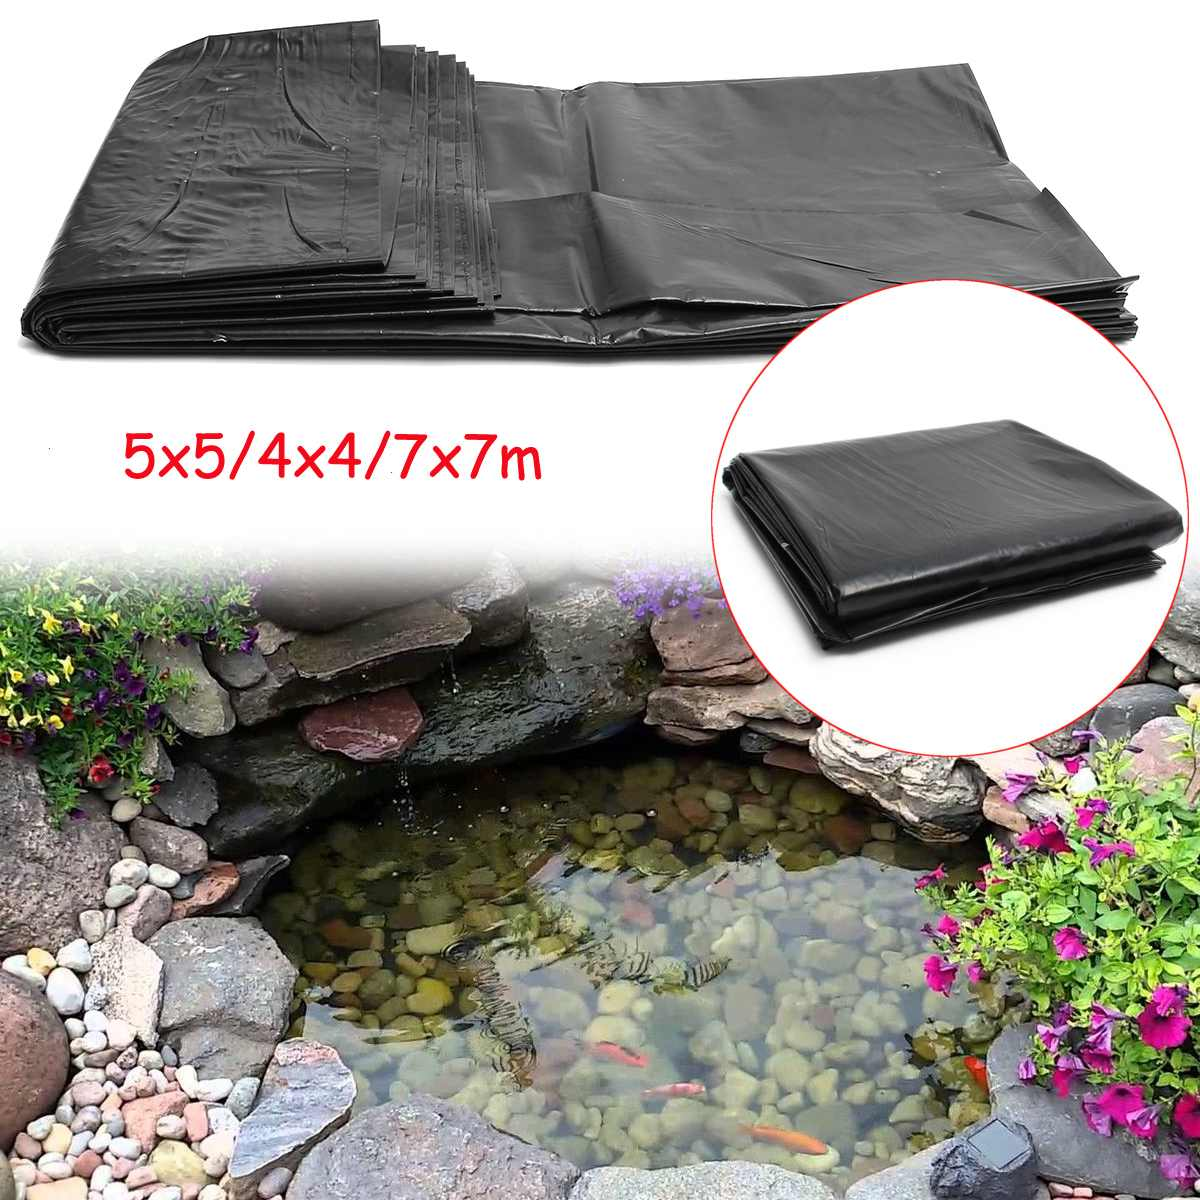 7x7m - 5x5m - 4x4m HDPE Fish Pond Liner Garden Pond Landscaping Pool Reinforced Thick Heavy Duty Wat